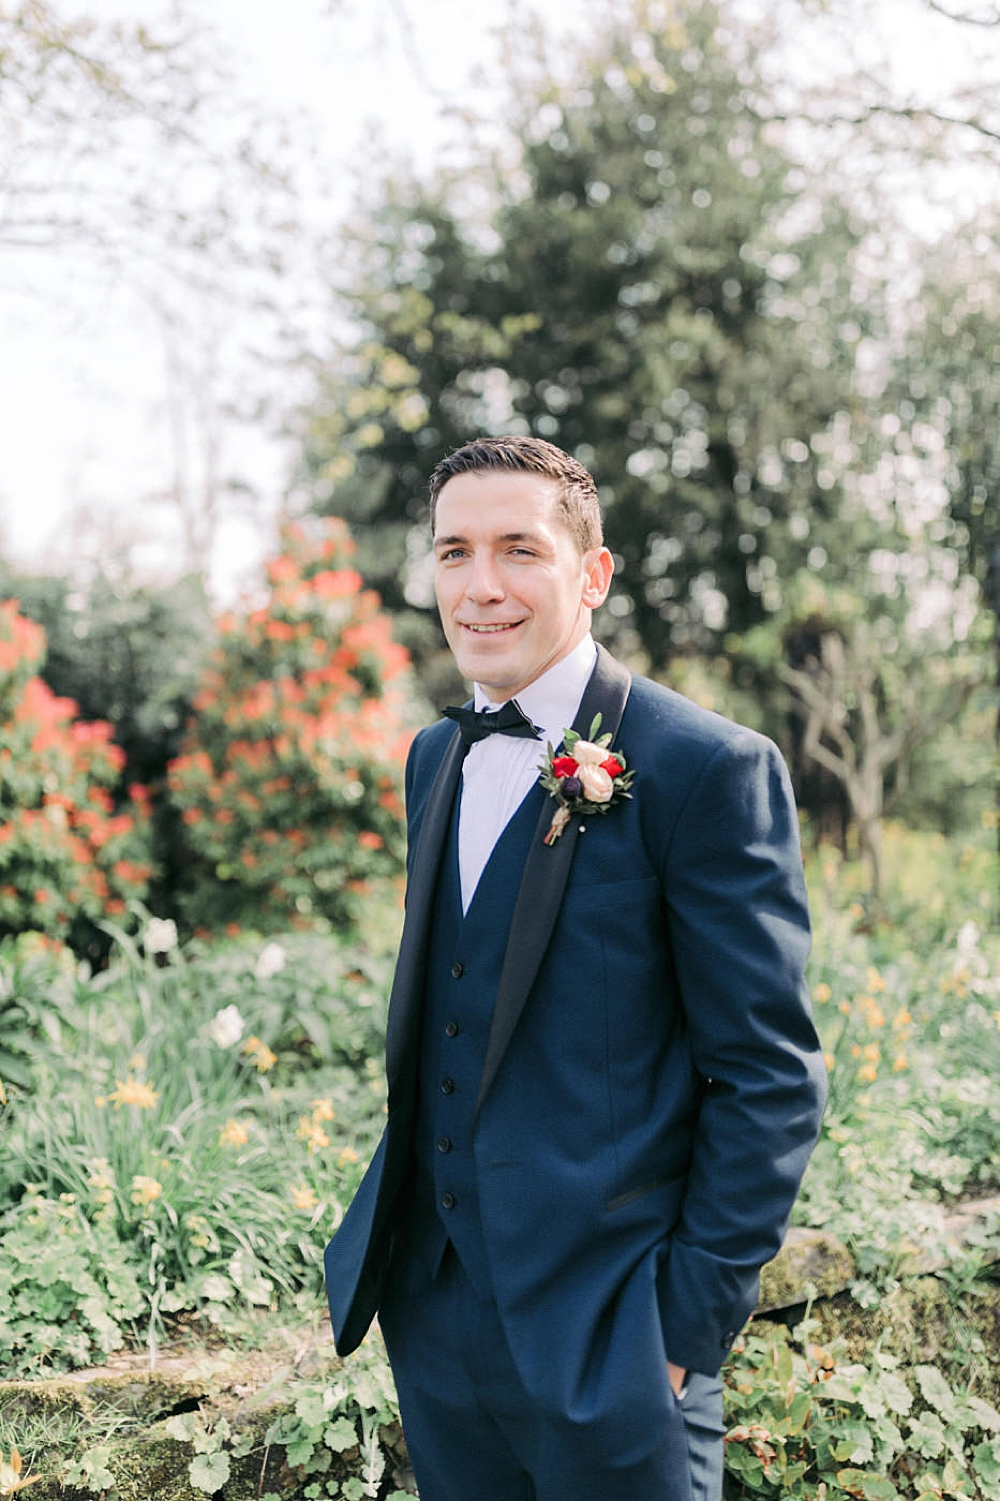 Fine Art Wedding Photographers,Glasgow Bride,The Gibsons,The Gibsons Photography,light and airy wedding photographers glasgow,light and bright wedding photographers scotland,romantic photographers Scotland,